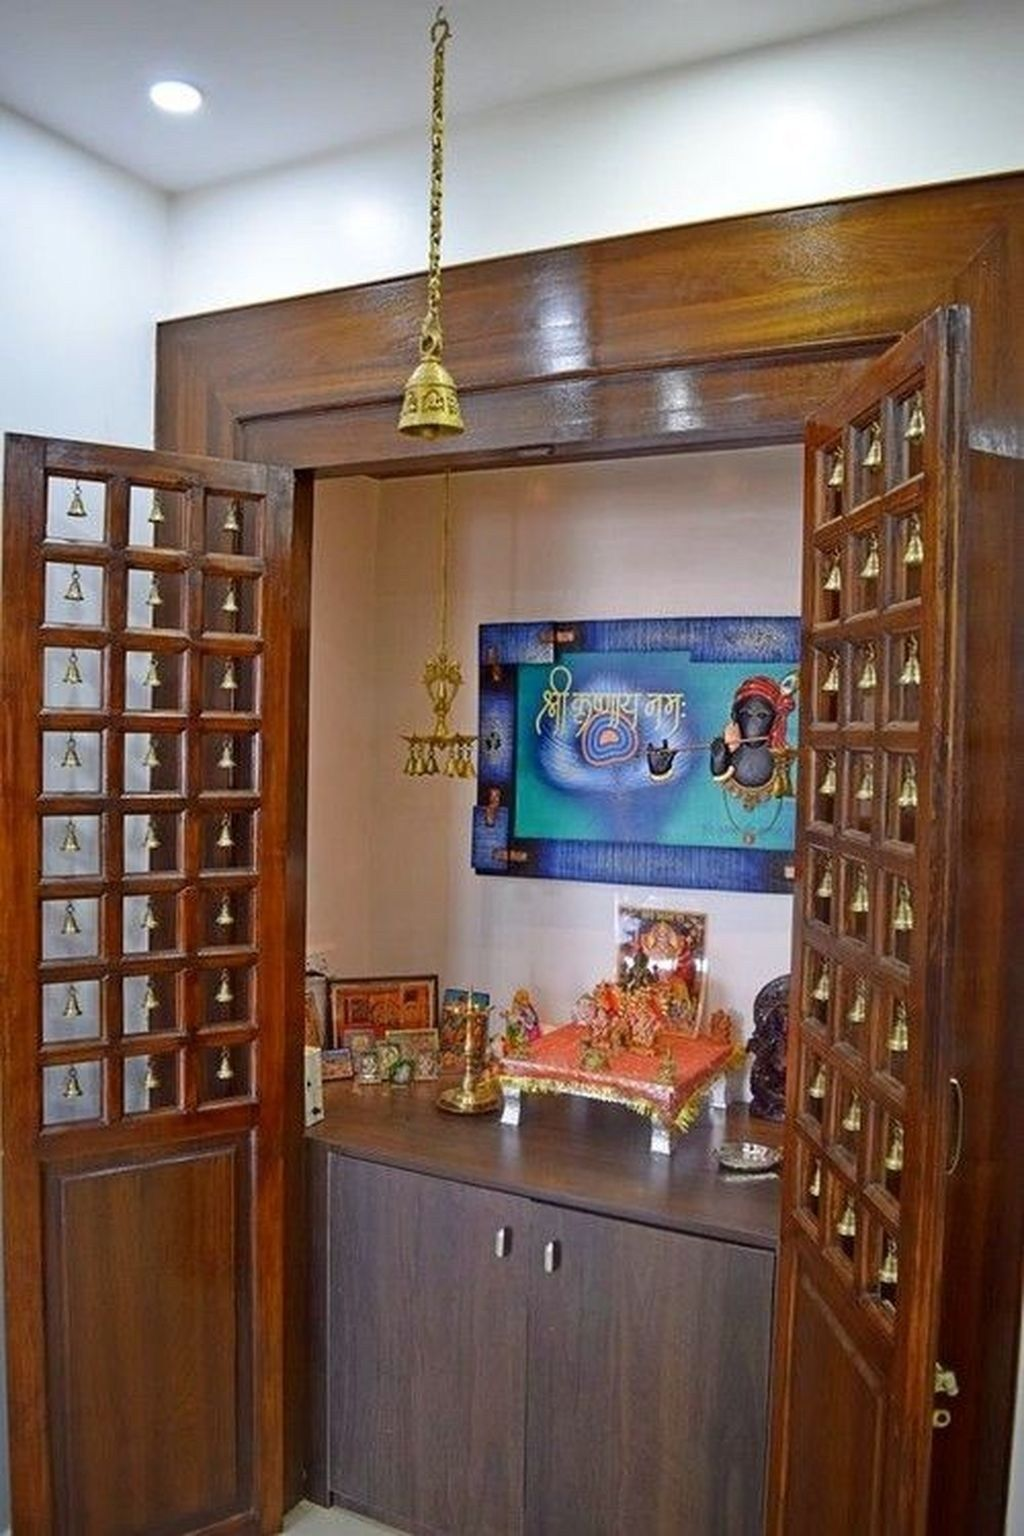 Latest Pooja Room Door Designs 2013: Charming Indian Decor Ideas For Home 30